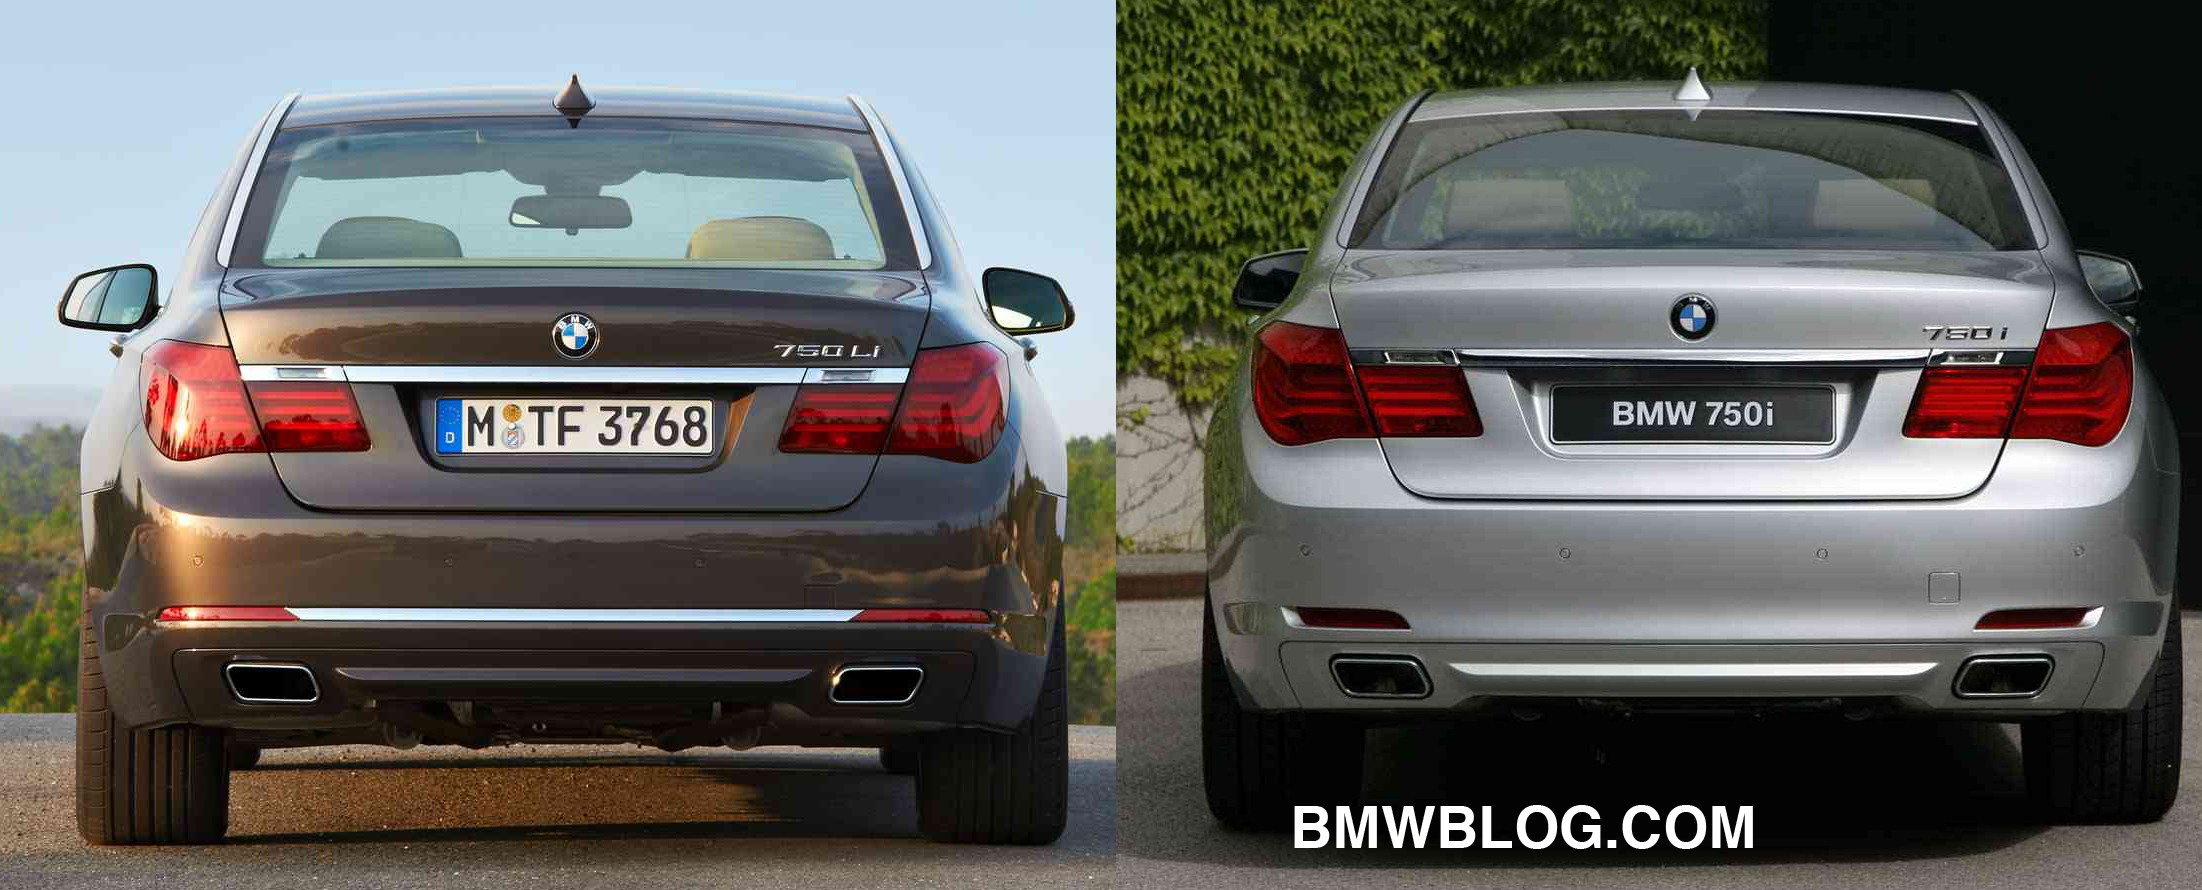 2012 Bmw 750li 22 D2forged Fms09 How To Install Bavsound Under Seat Fuse Box Subwoofer F30 12 Skyline Cars Diagram 11 Driven 2016 750i